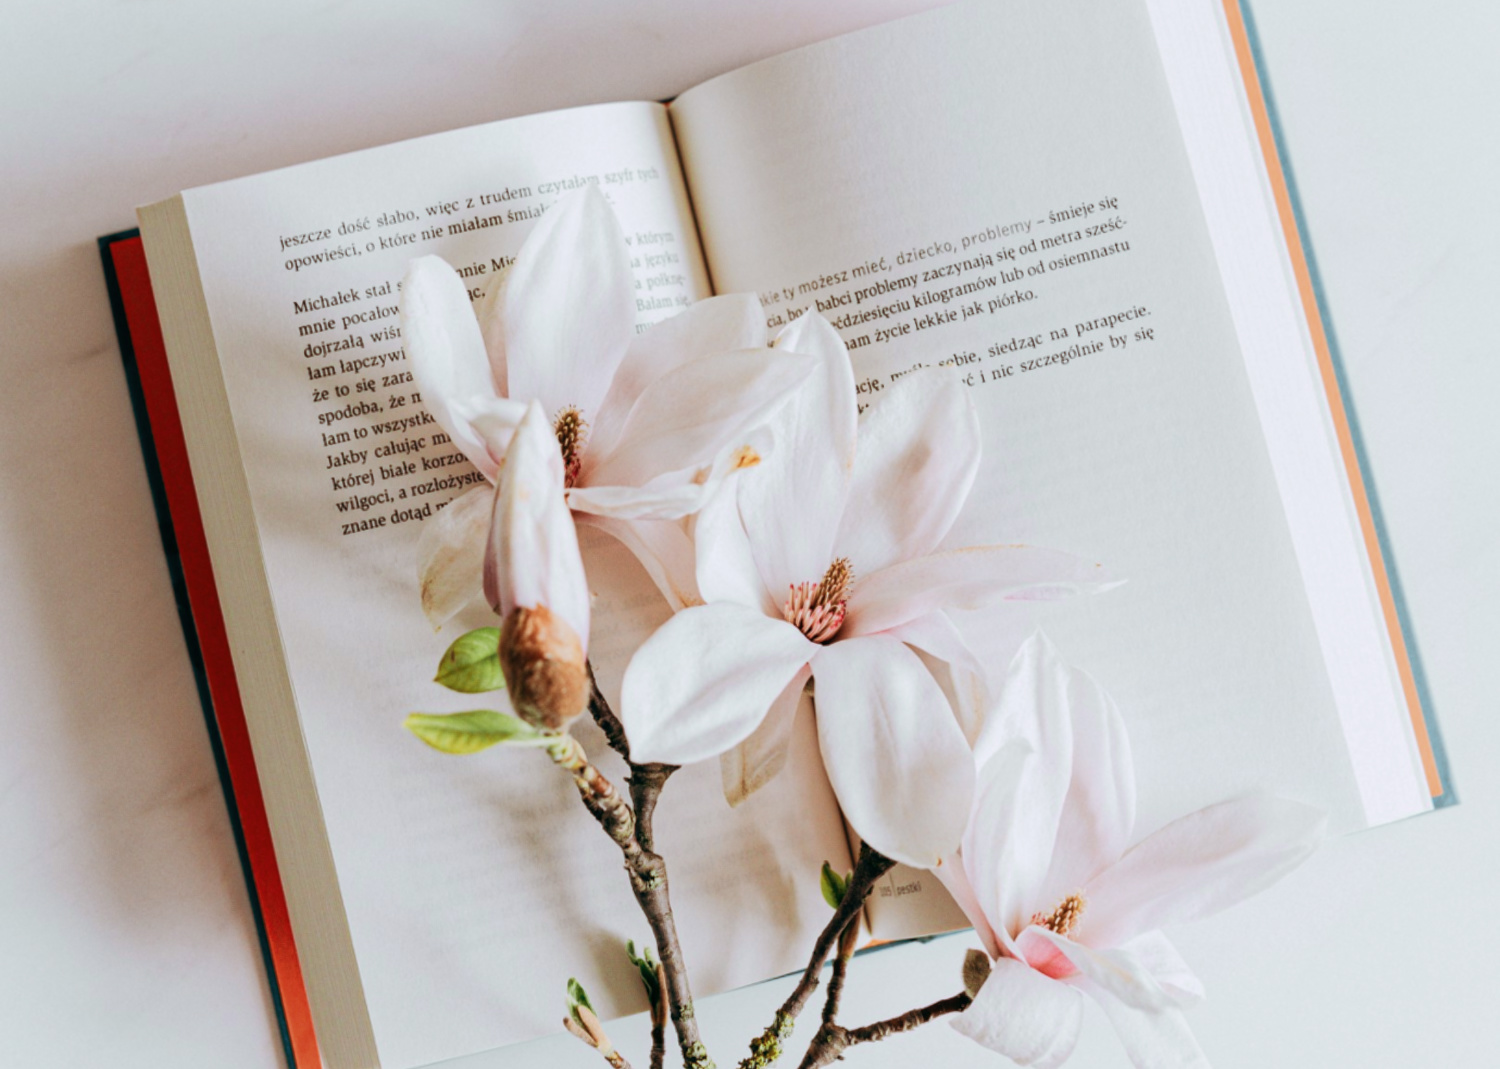 This isn't quite what we meant by a 'PETAL' paragraph, but I thought that the image worked well anyway!